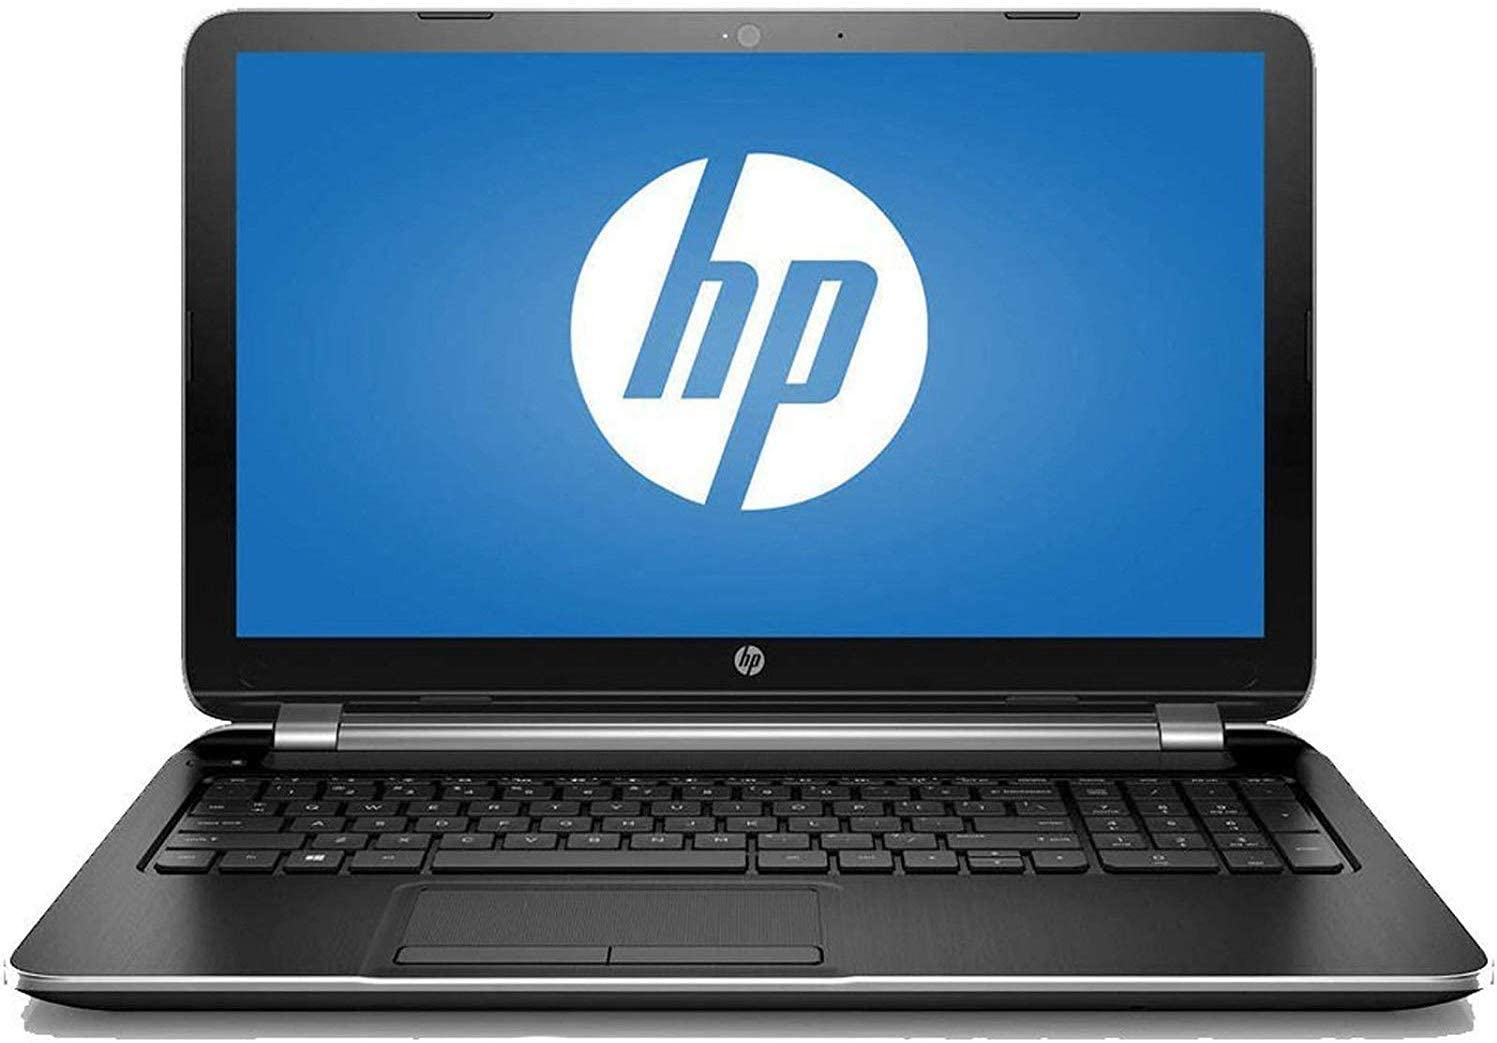 HP 15-f271wm 15.6 Laptop PC -Intel Pentium N3540 Processor / 4GB Memory / 500GB HD / DVD±RW/CD-RW / HD Webcam /Windows 10 Home